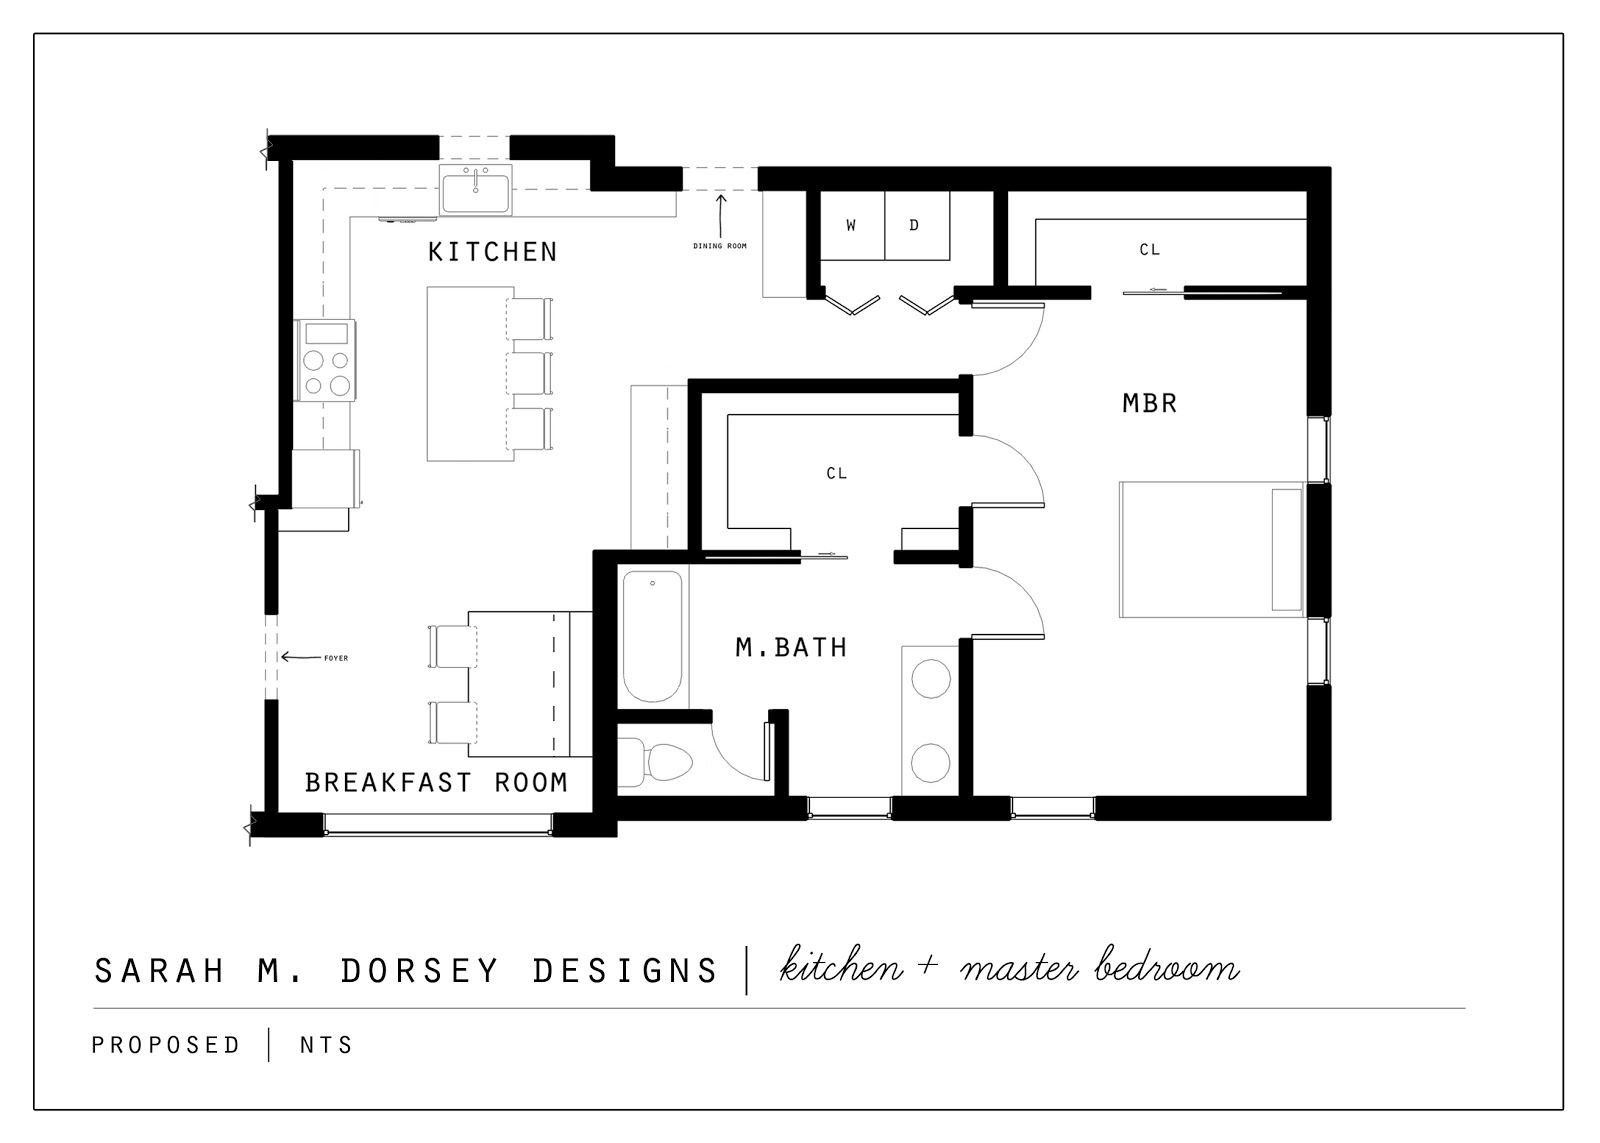 Sarah m dorsey designs proposed kitchen and master suite remodel - Master bedroom design plans ideas ...